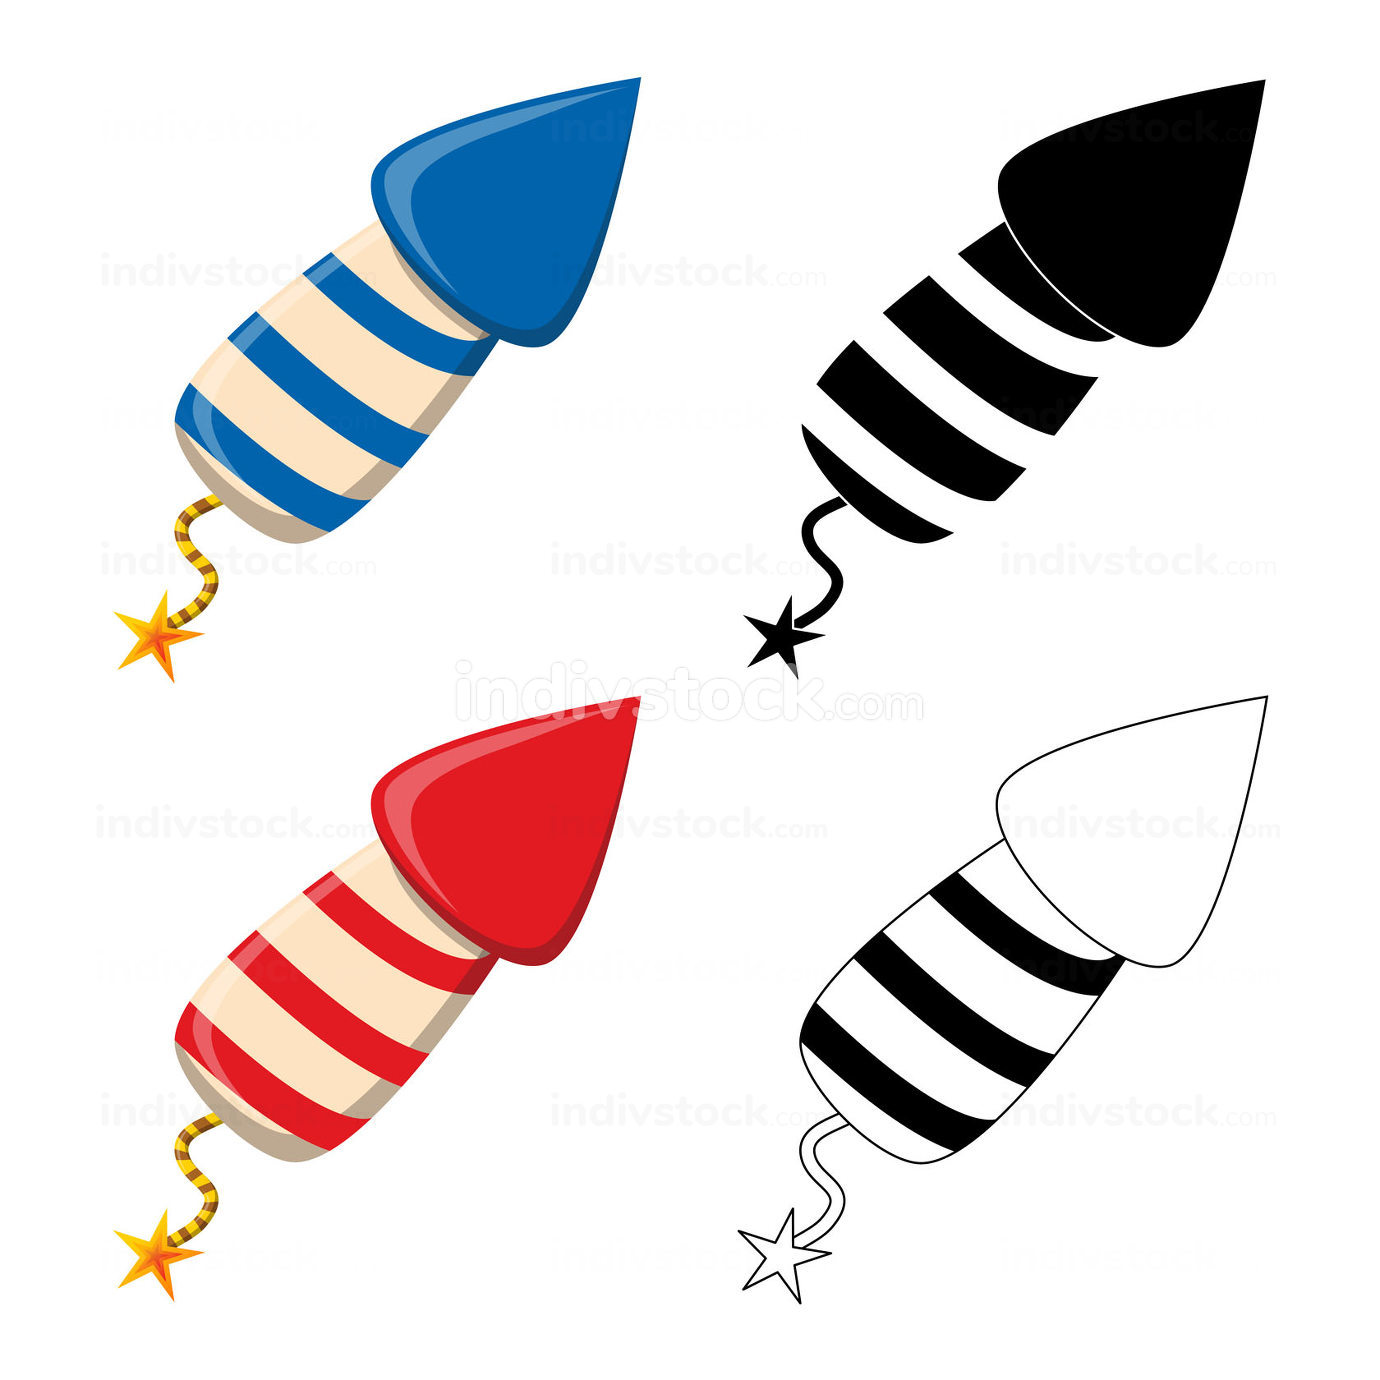 Firework rocket petard icon set. New year celebration symbol collection. Red, blue, outline and silhouette